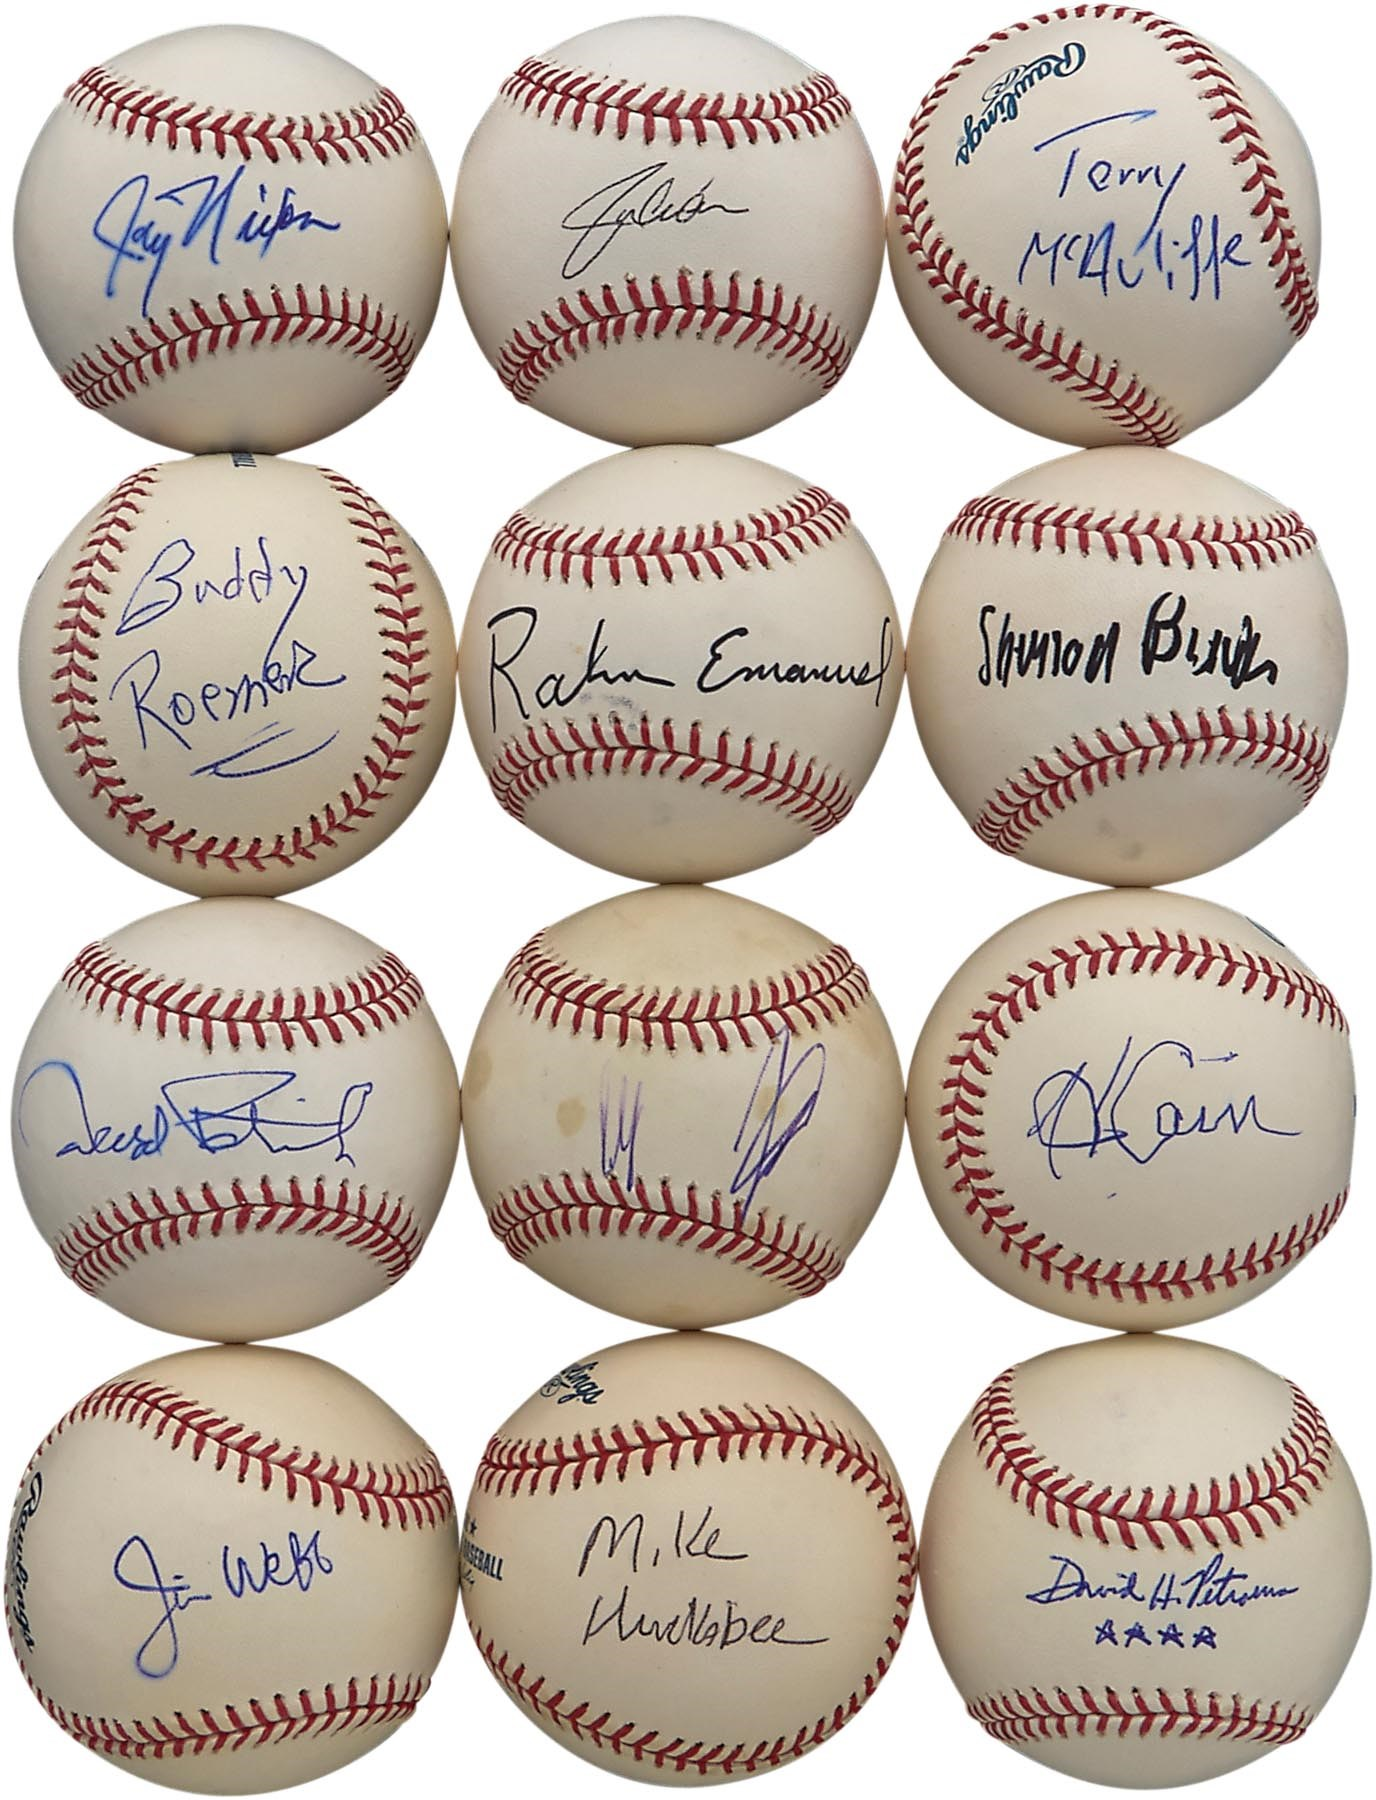 Frank Howard Signed Baseball Sports Mem, Cards & Fan Shop Coa Jsa Excellent In Cushion Effect Balls